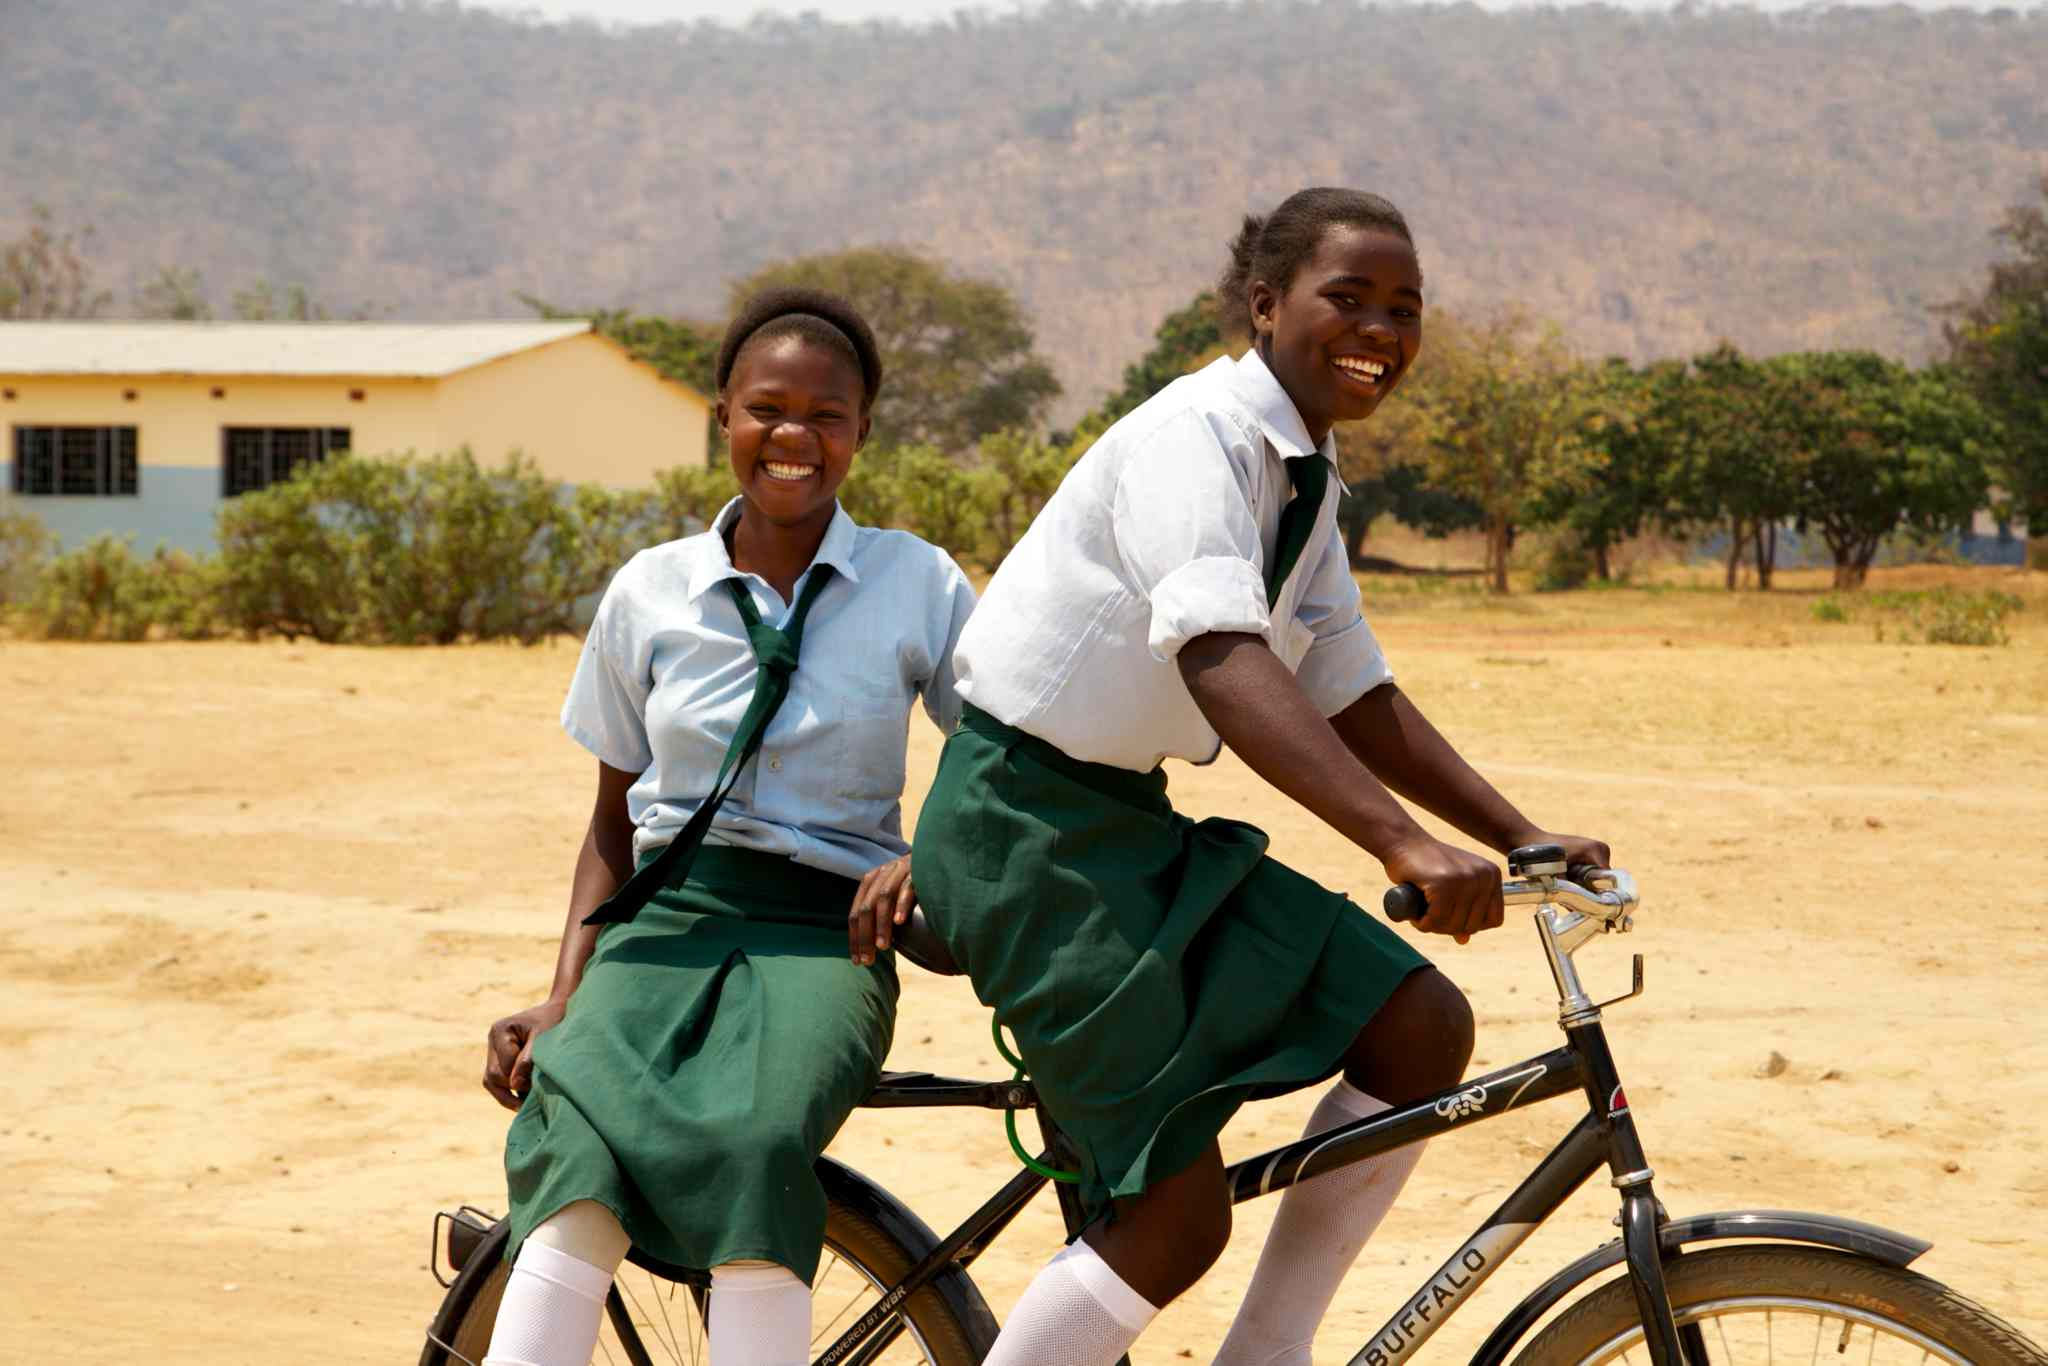 Students living in rural areas use the bikes to get to school regularly and on time. With access to the Buffalo Bikes, student attendance and performance greatly improve.